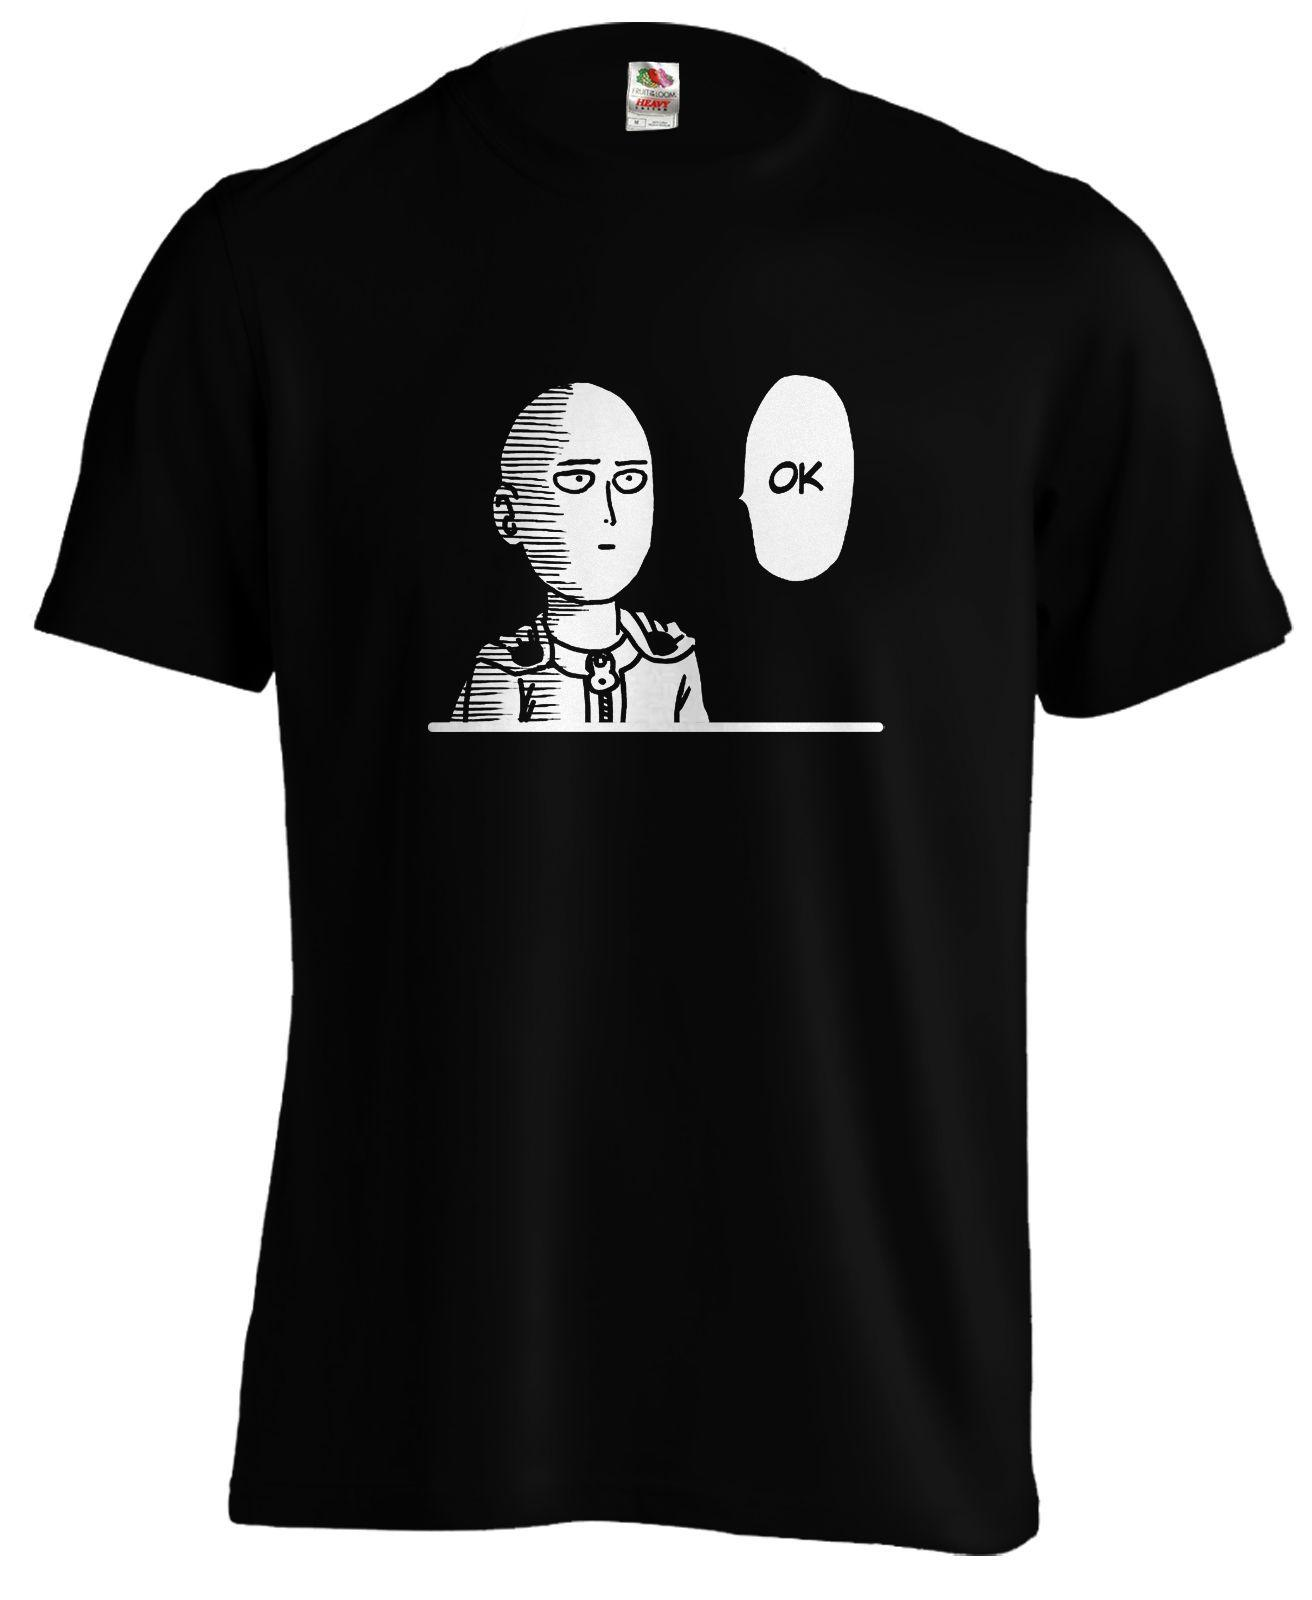 Saitama One Punch ok Onepunch t shirt tee anime Funny free shipping Unisex Casual tshirt gift